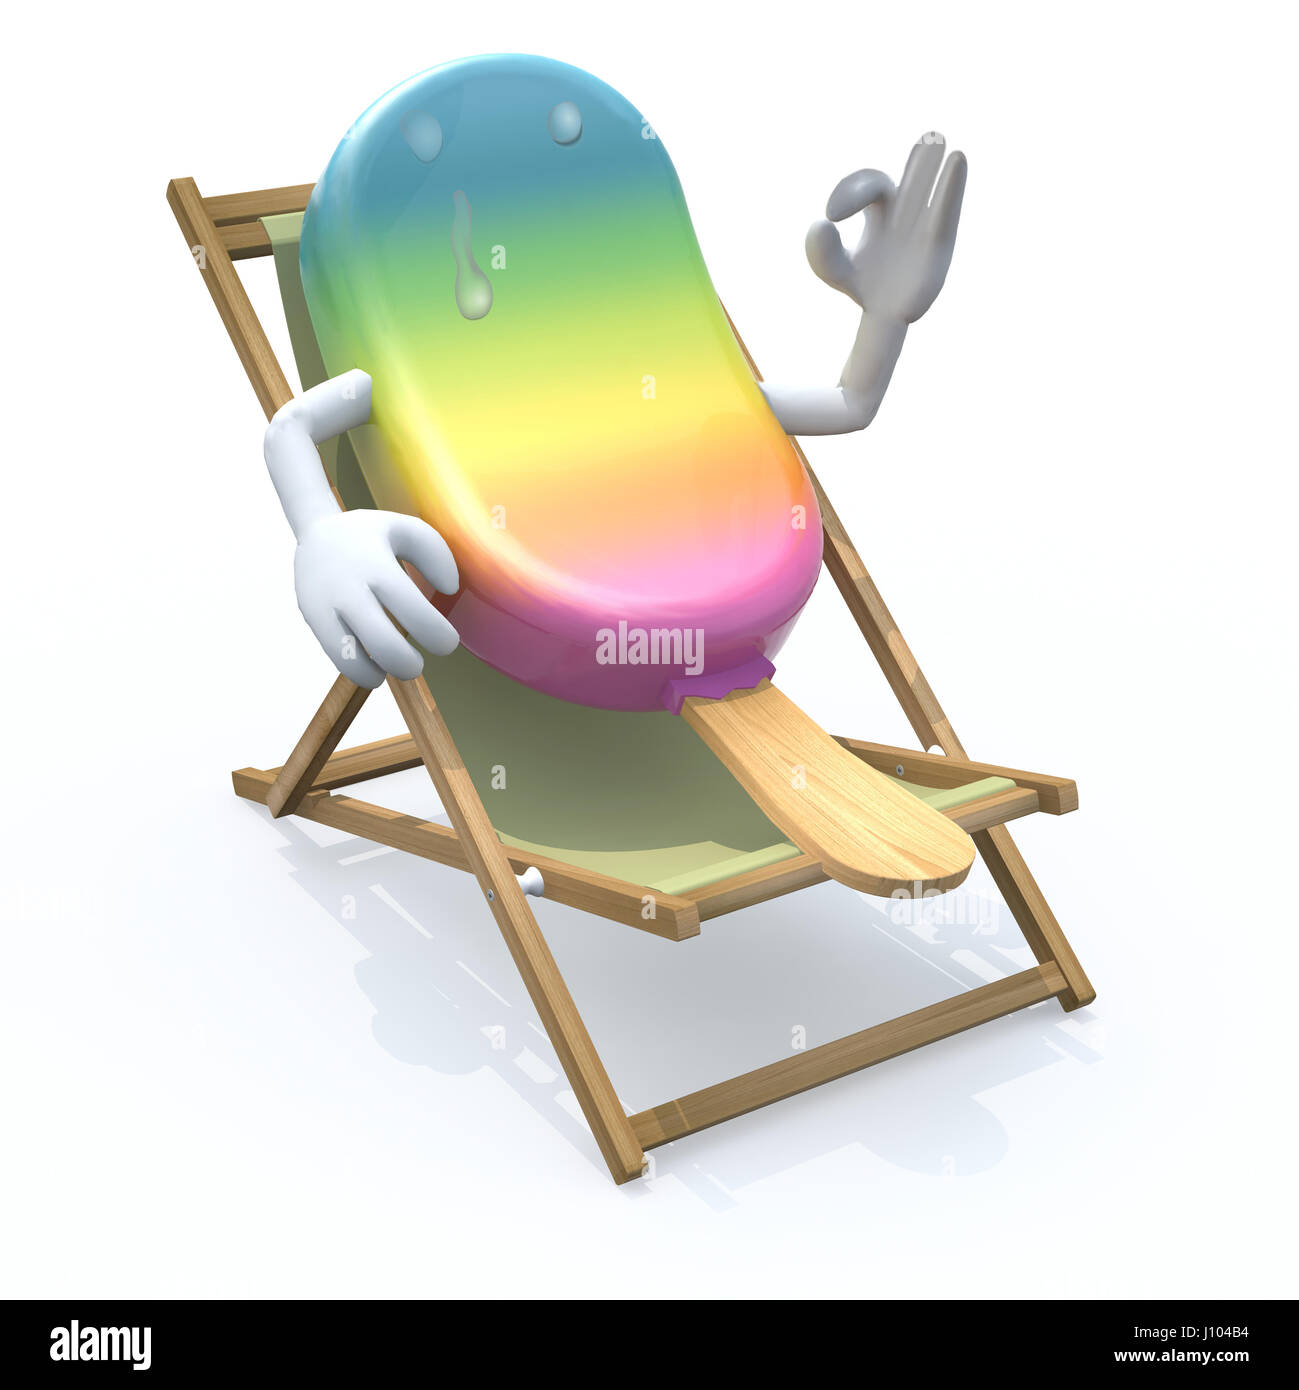 ice lolly cartoon that rest in beach chair 3d illustration  sc 1 st  Alamy & ice lolly cartoon that rest in beach chair 3d illustration Stock ...